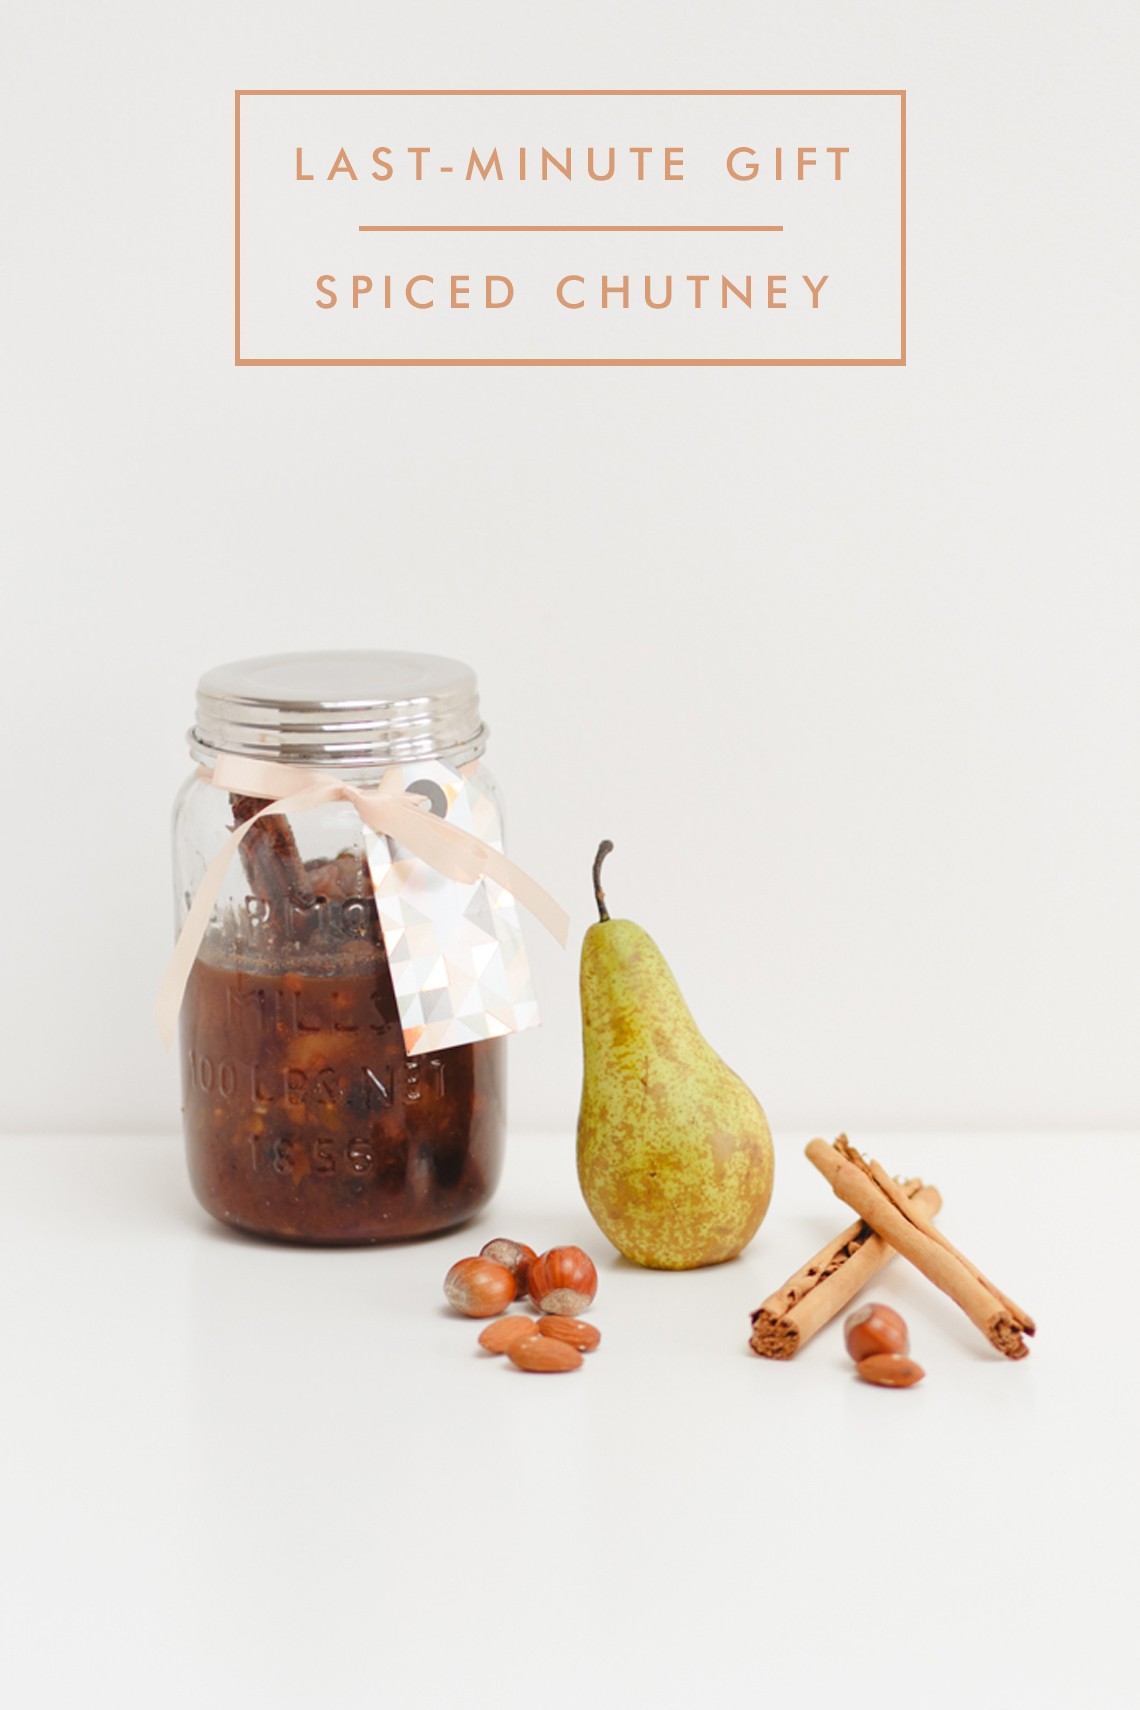 BLOVED Lifestyle Blog Christmas Gift Guide Last Minute Gifts Claire Graham Photography Spiced Pear Chutney